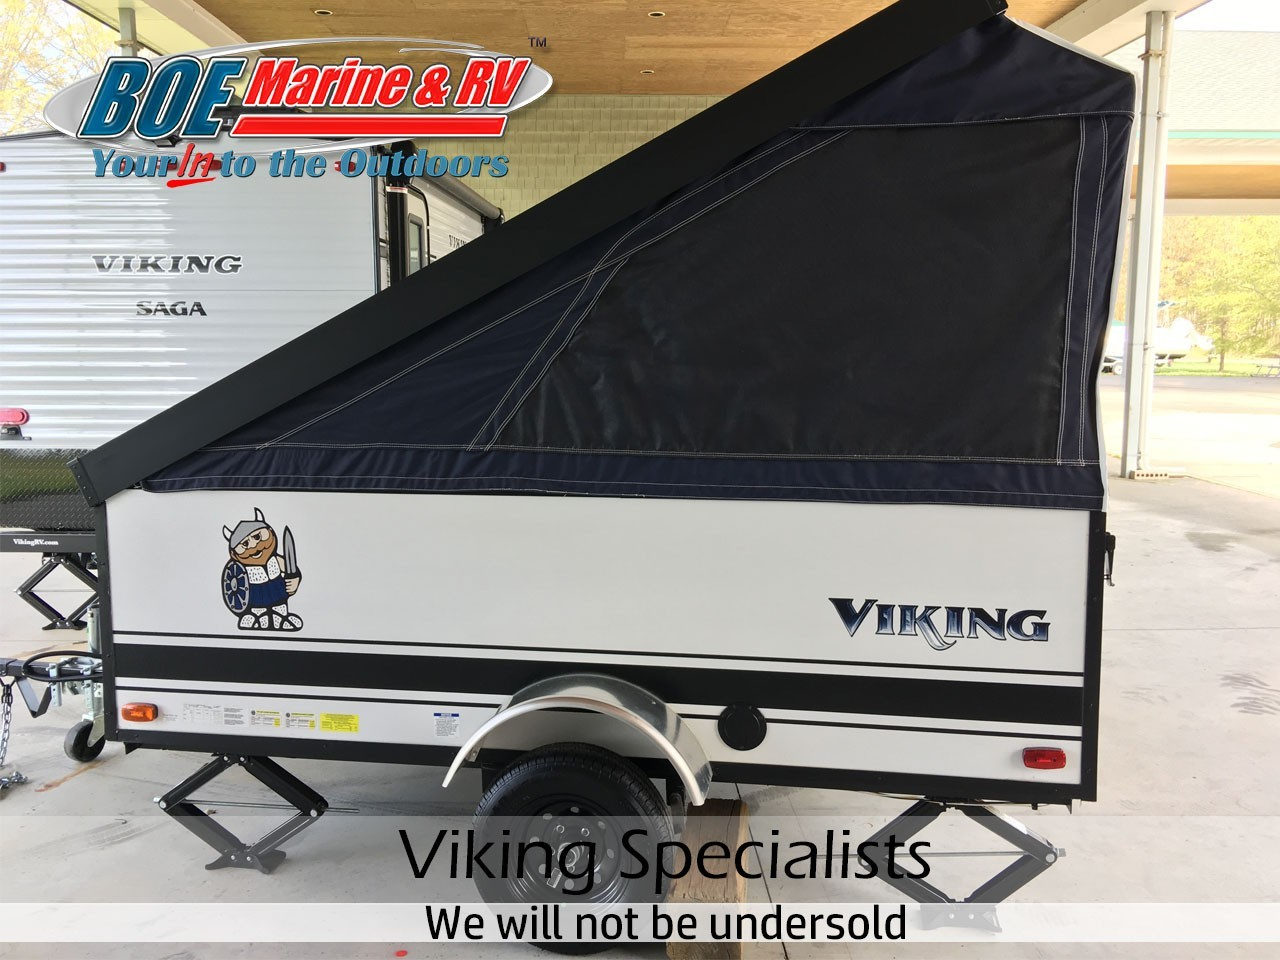 Maryland 18 Pop Up Campers Near Me For Sale Rv Trader Viking Camper Wiring Diagram